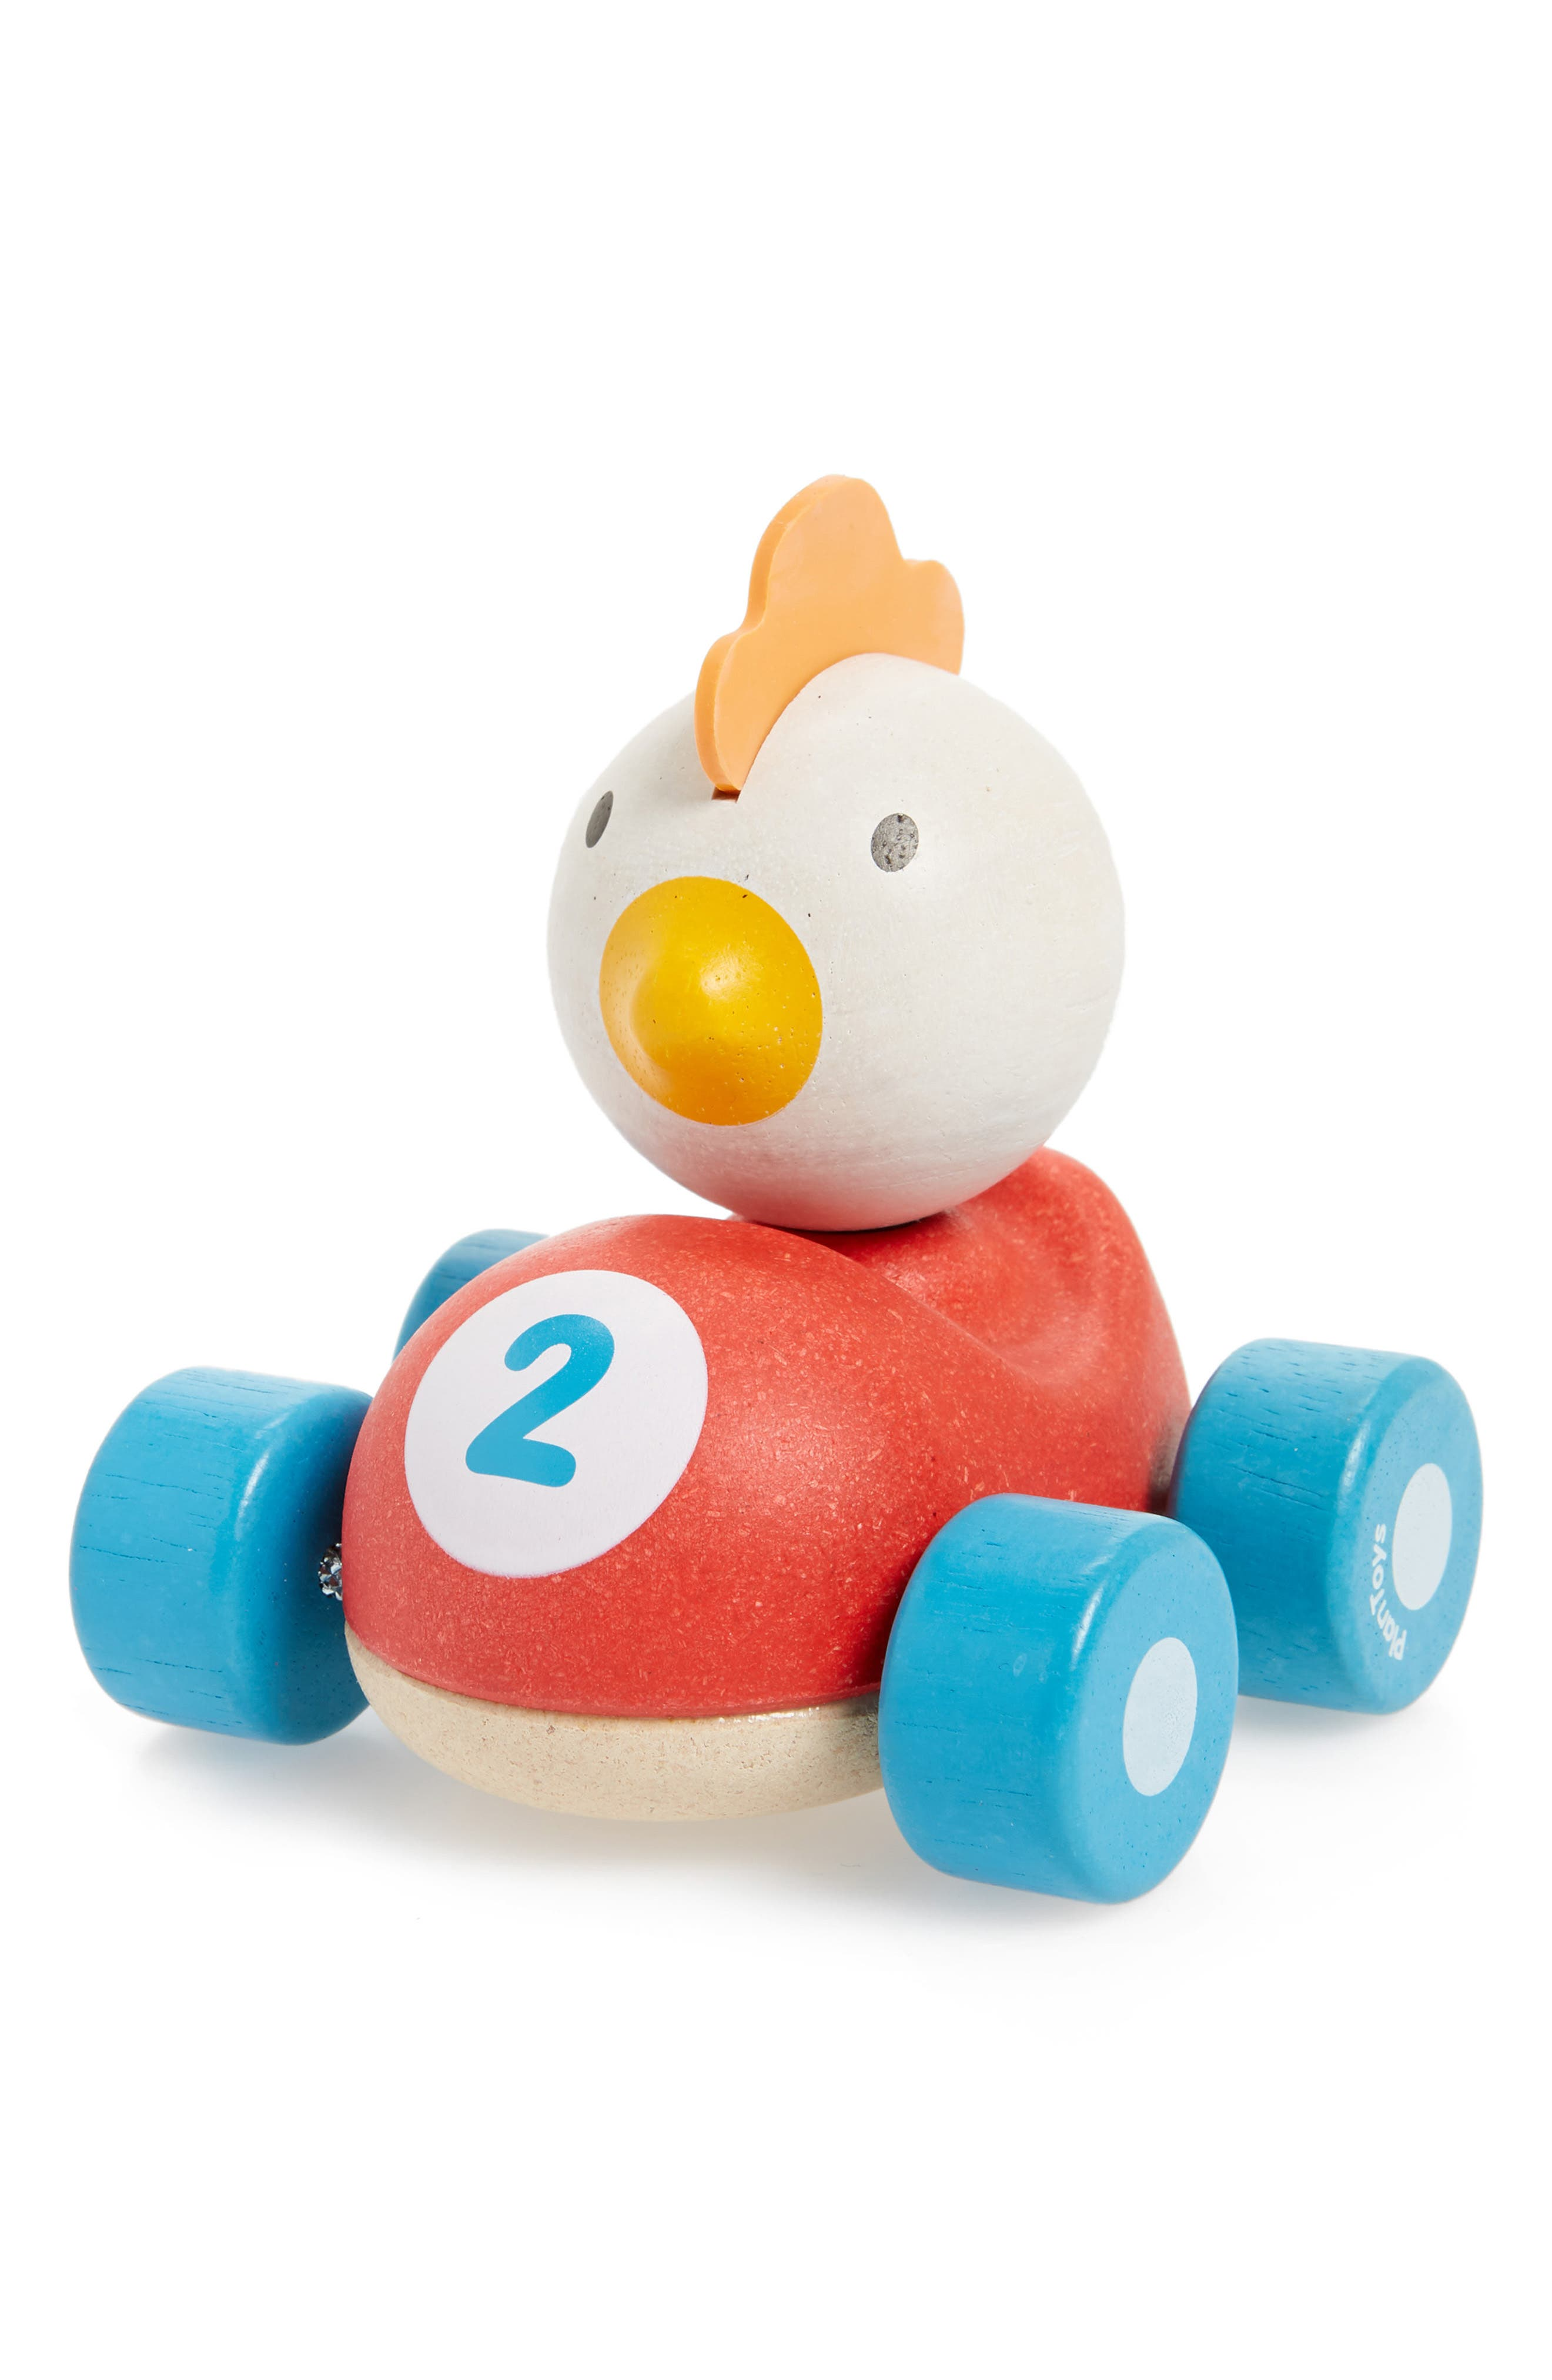 Plan Toys<sup>®</sup> Chicken Racer Rolling Toy,                         Main,                         color, Multi